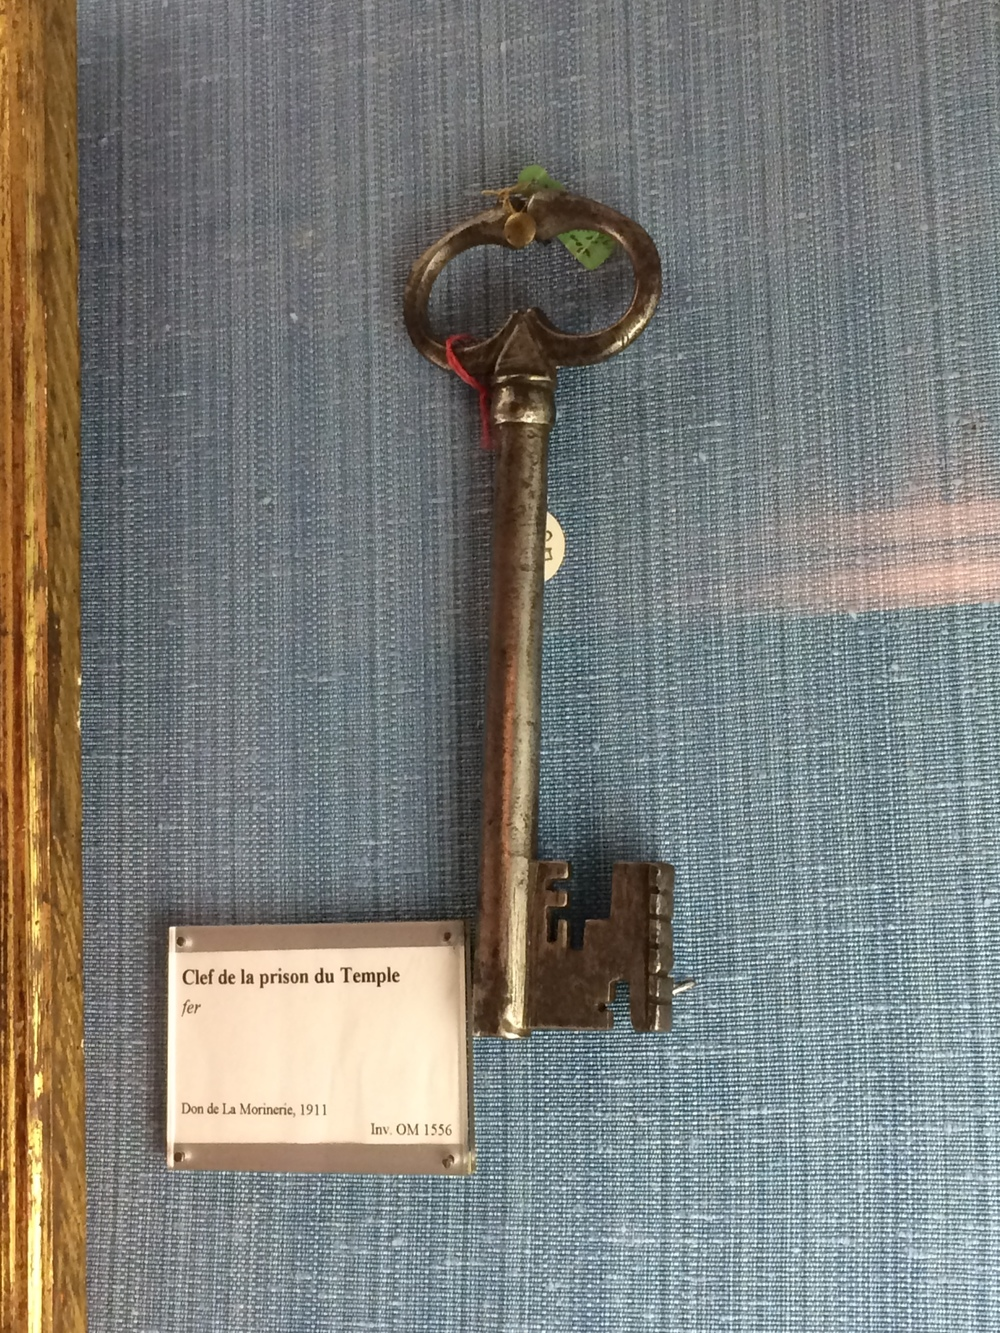 The key to Le Temple, the name of the the prison that held the royal family after the French Revolution.